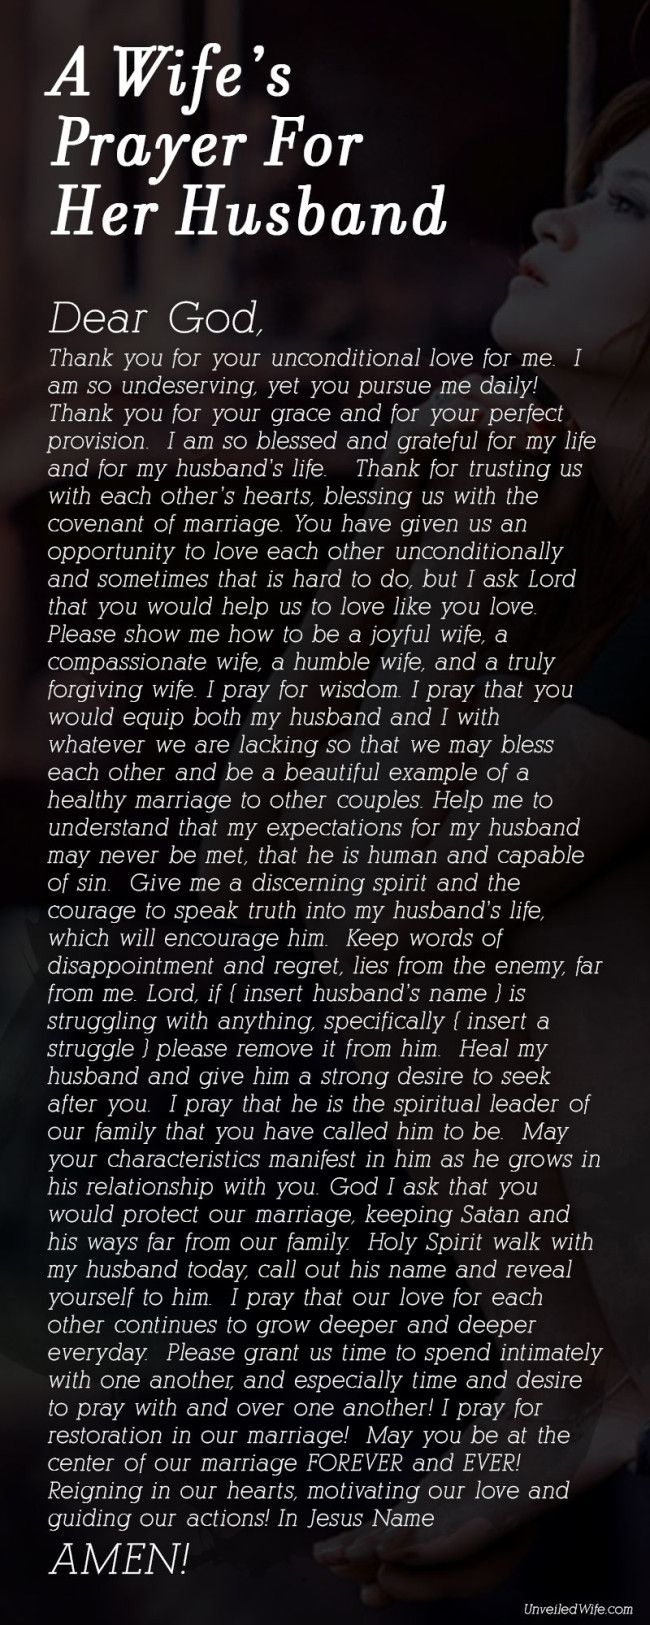 A Wifes Prayer For Her HusbandWife Prayer, Inspiration, Quotes, Faith, Marriage Prayer, Beautiful Prayer, Future Husband, Husband Prayer, Hubby